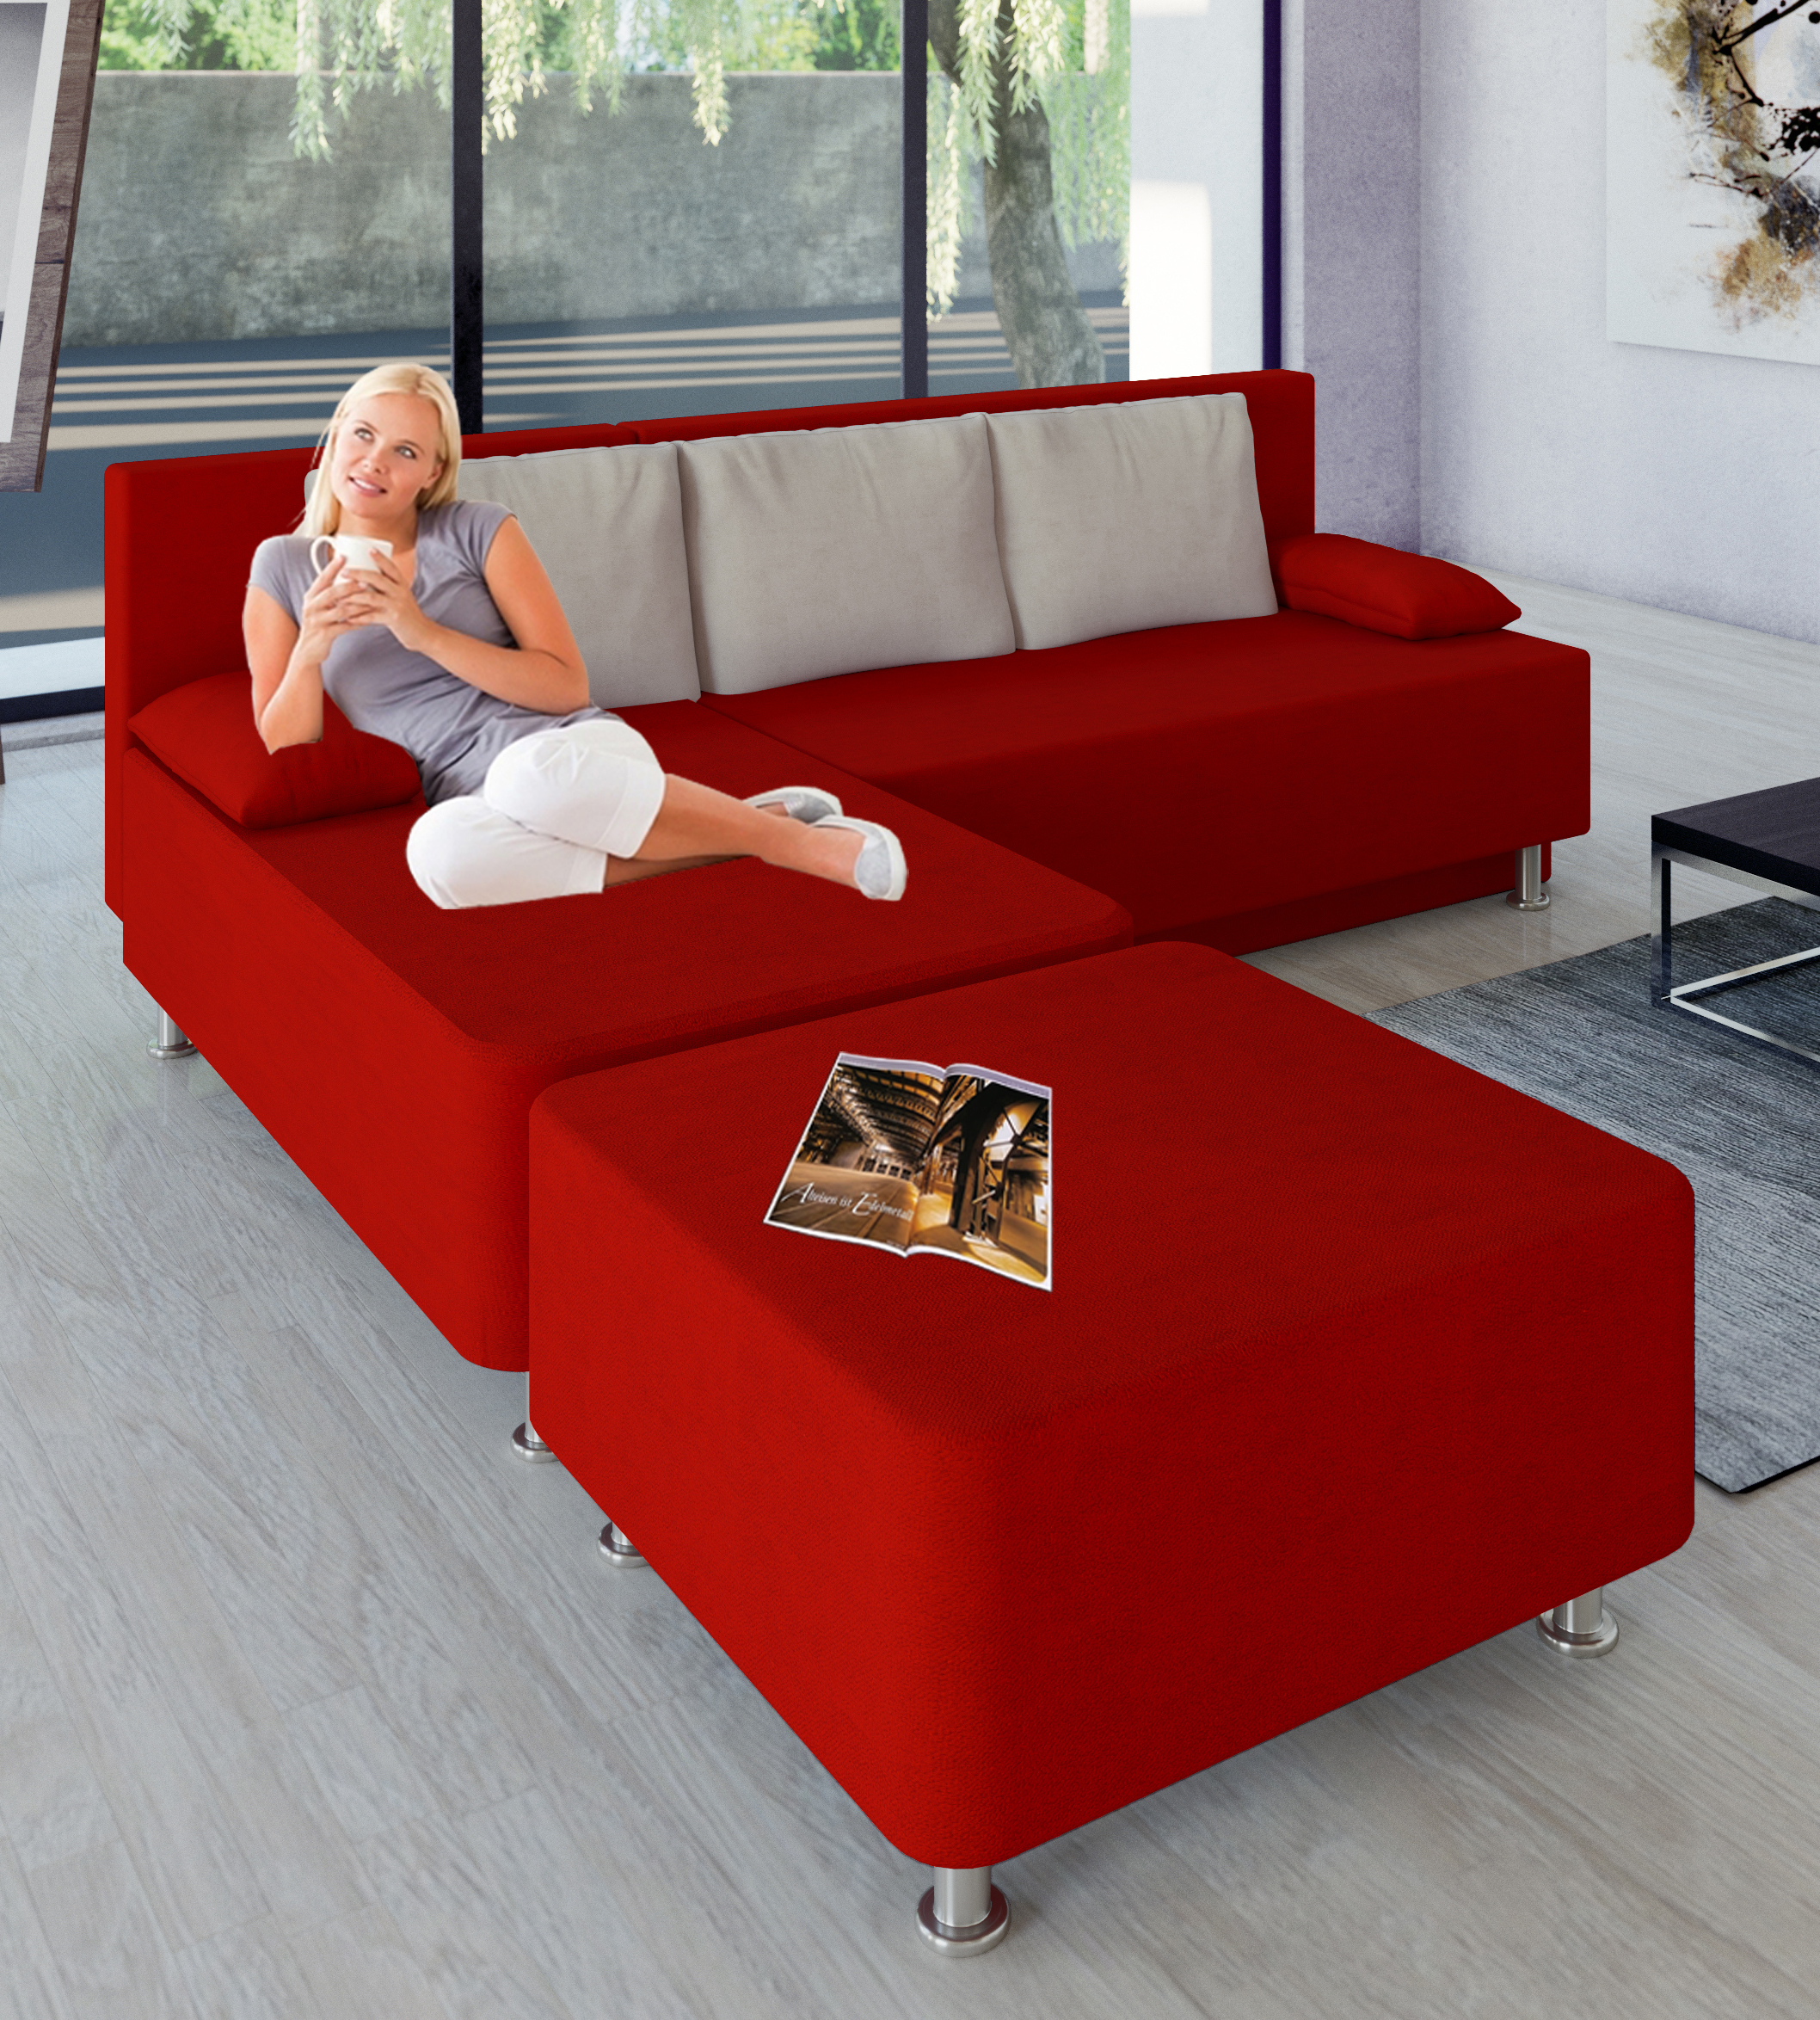 vcm gruppe vcm schlafsofa wohnlandschaft ecksofa couch mit schlaffunktion hocker rot magota. Black Bedroom Furniture Sets. Home Design Ideas